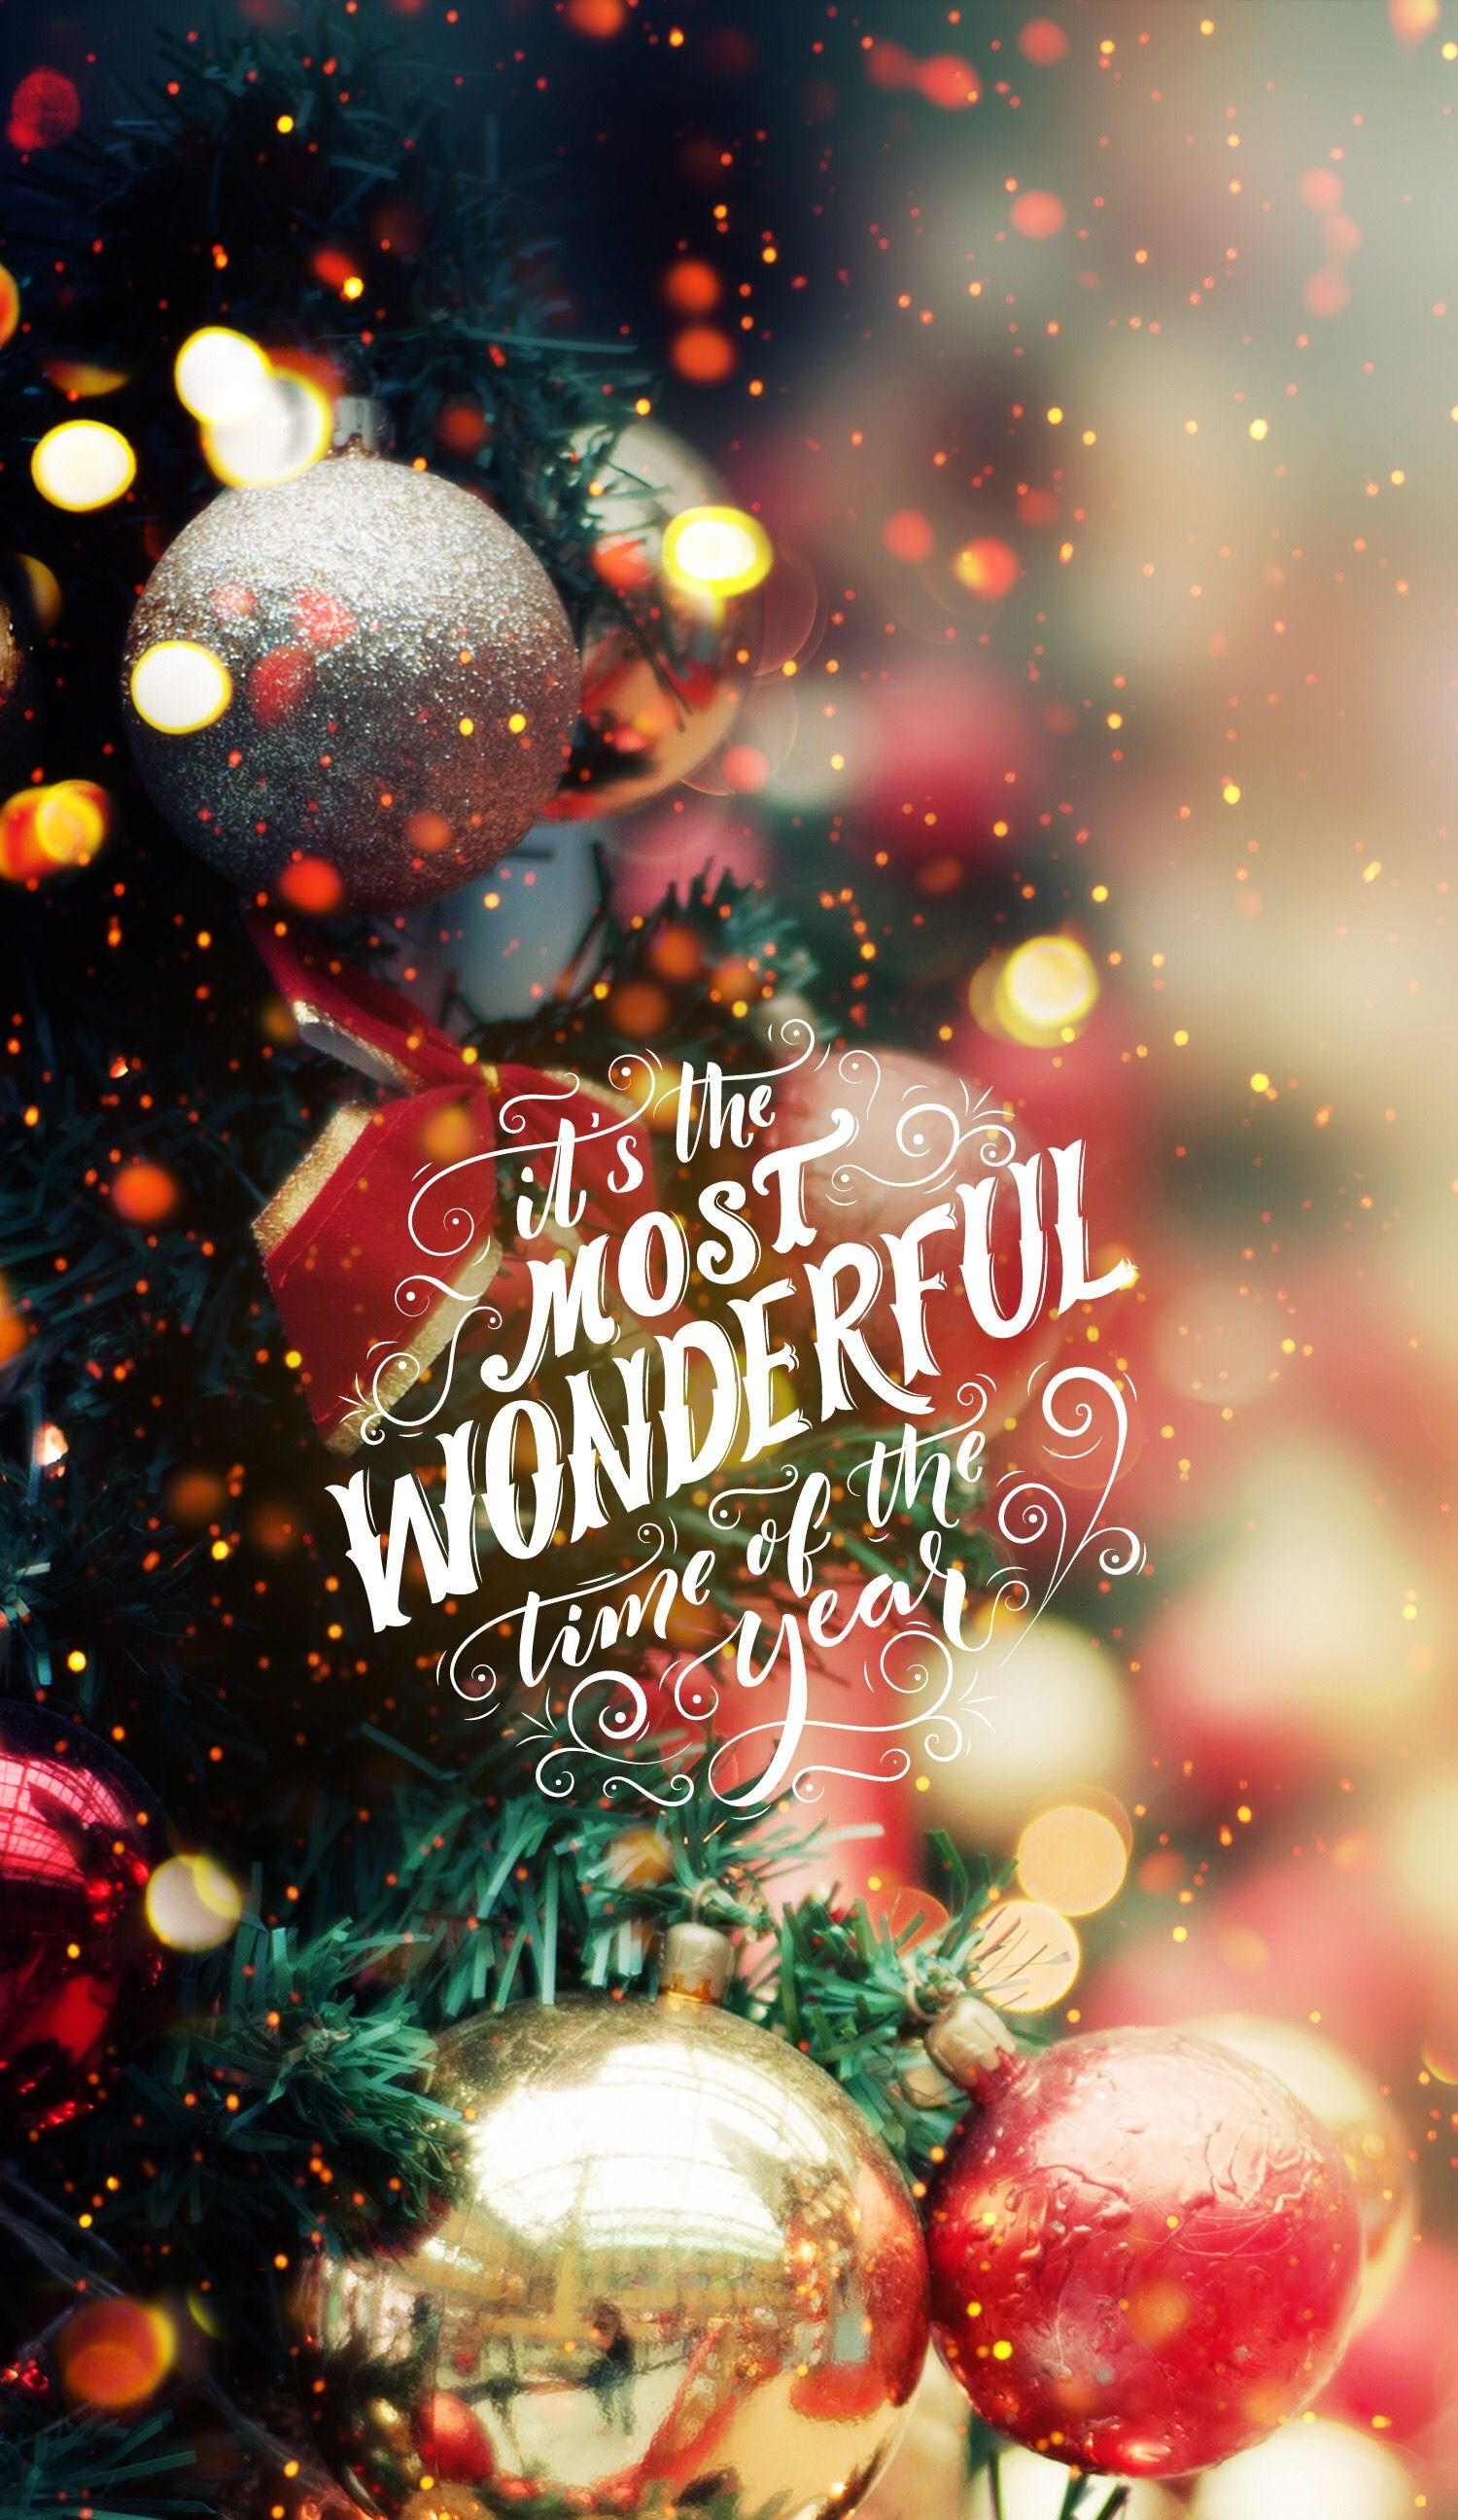 Its The Most Wonderful Time Of The Year Christmas Iphone Android Cellphone Lock Screen Wallpaper Background Christmas Tree Lights Ornaments